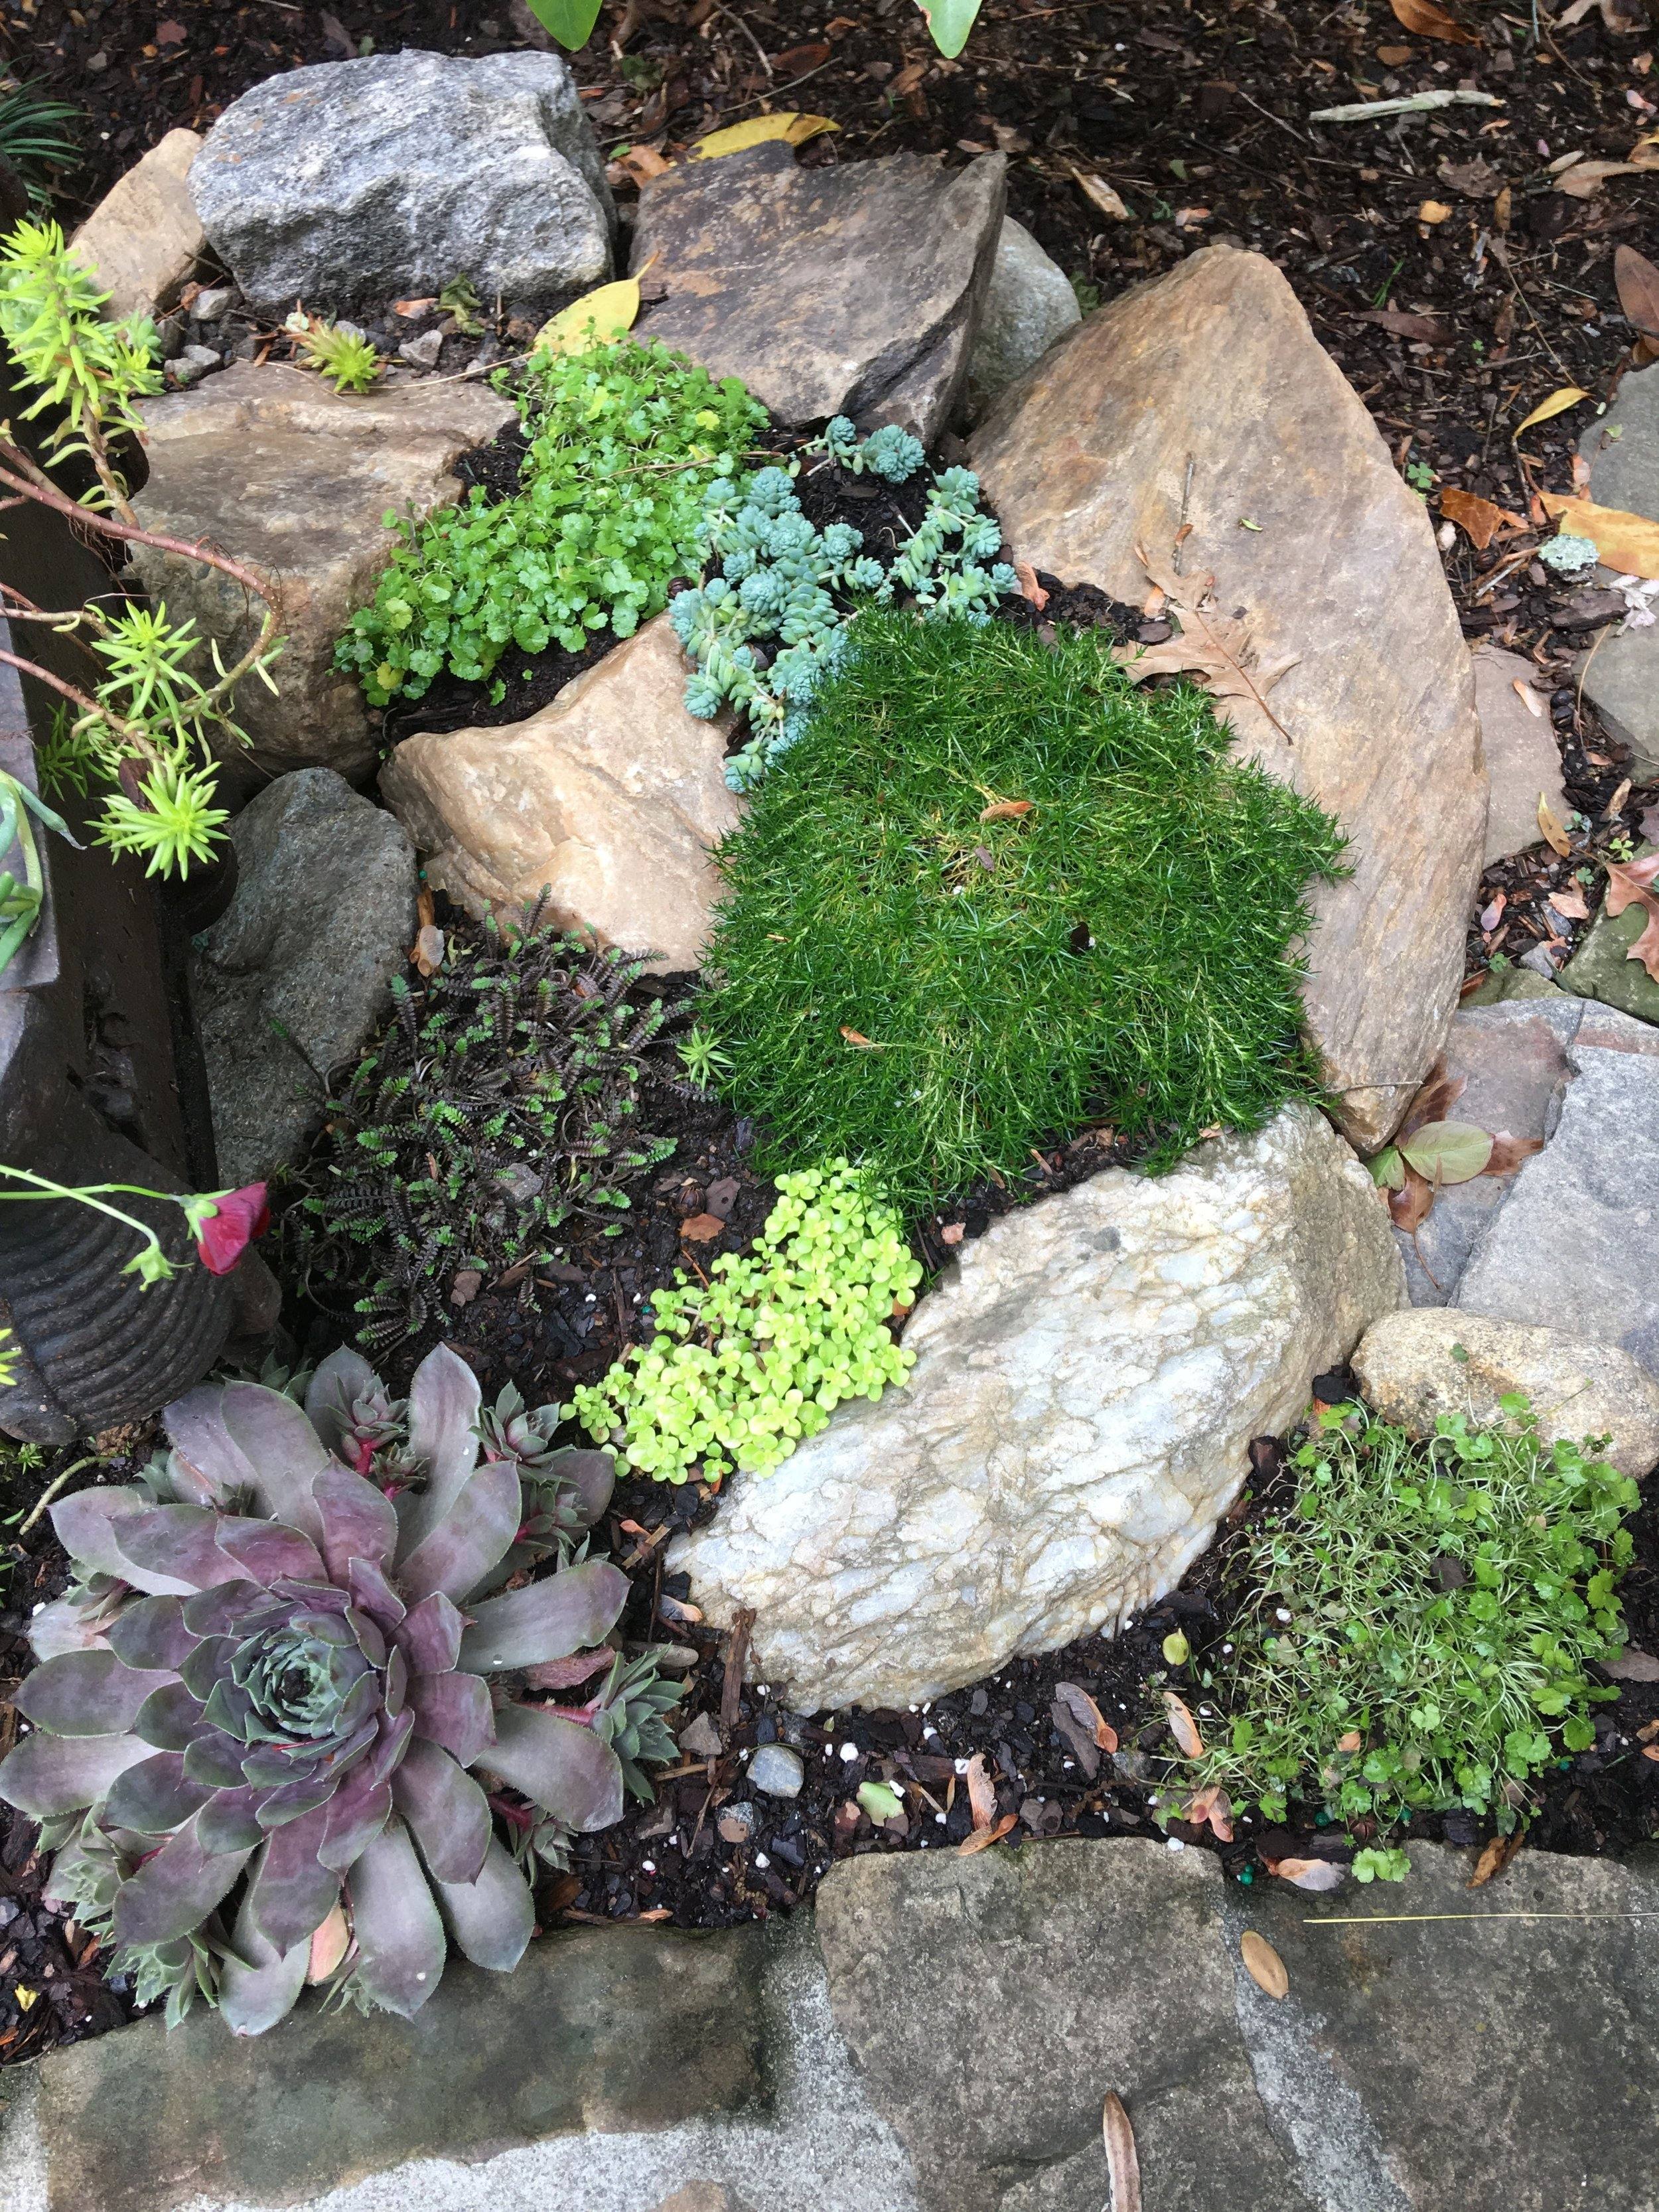 Mosses, hens and chicks, ferns and succulents surrounding the log grate